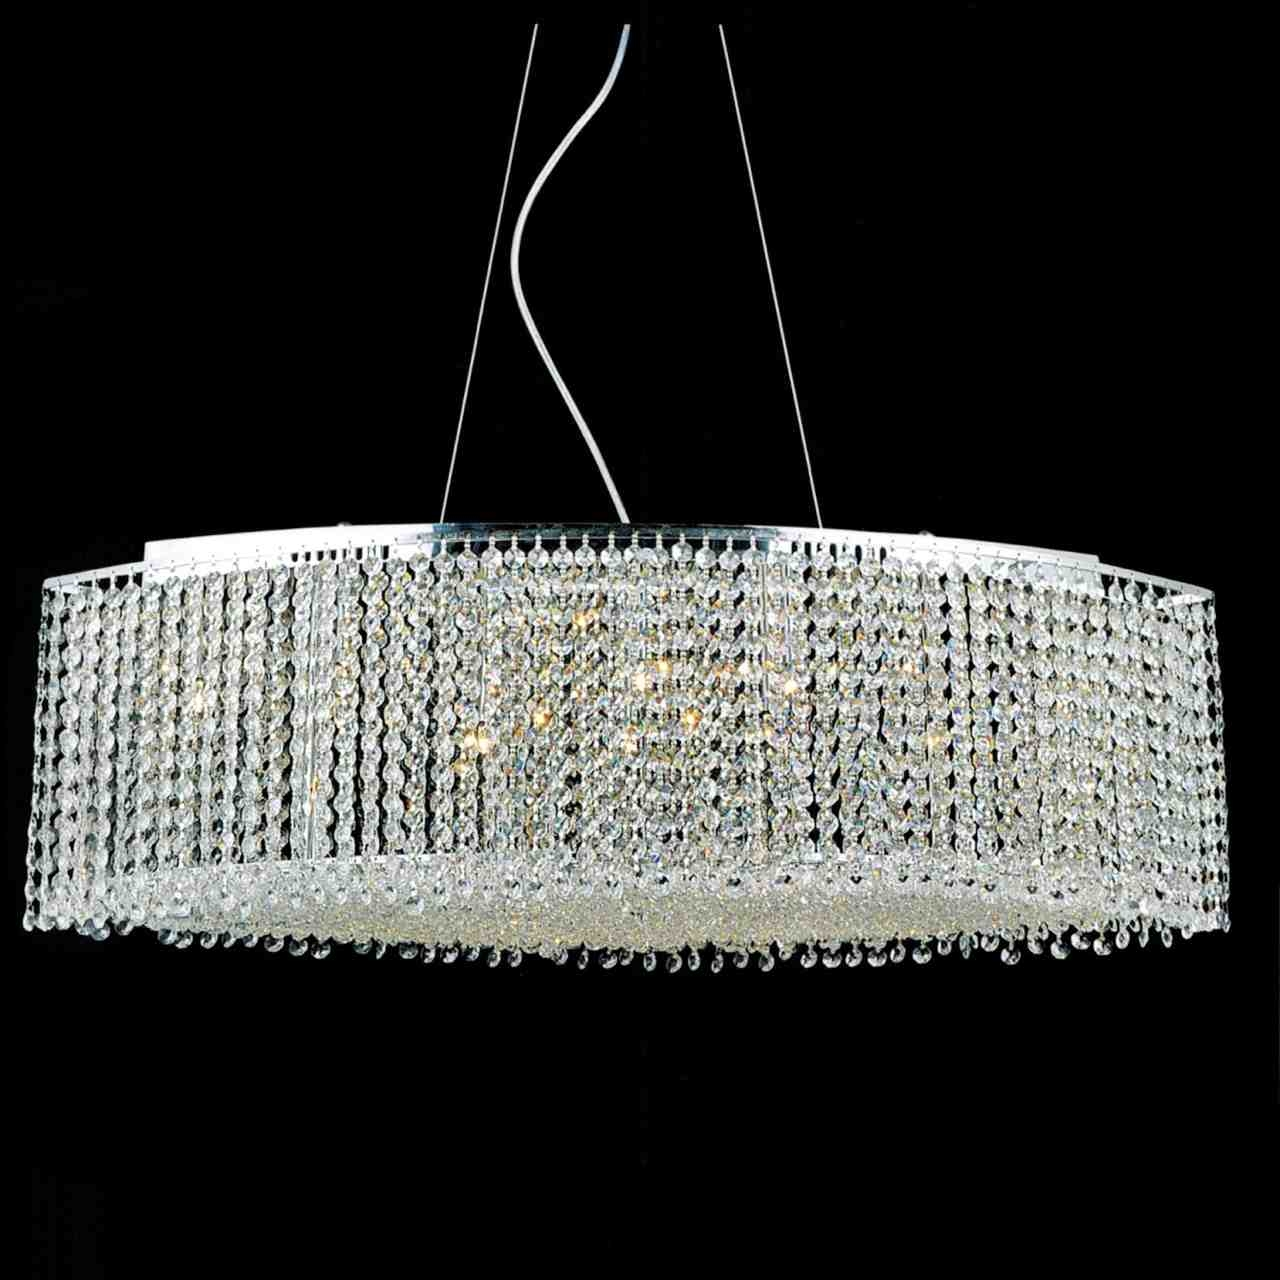 Brizzo Lighting Stores 35 Rainbow Modern Linear Crystal Pertaining To Chrome And Crystal Chandelier (#6 of 12)